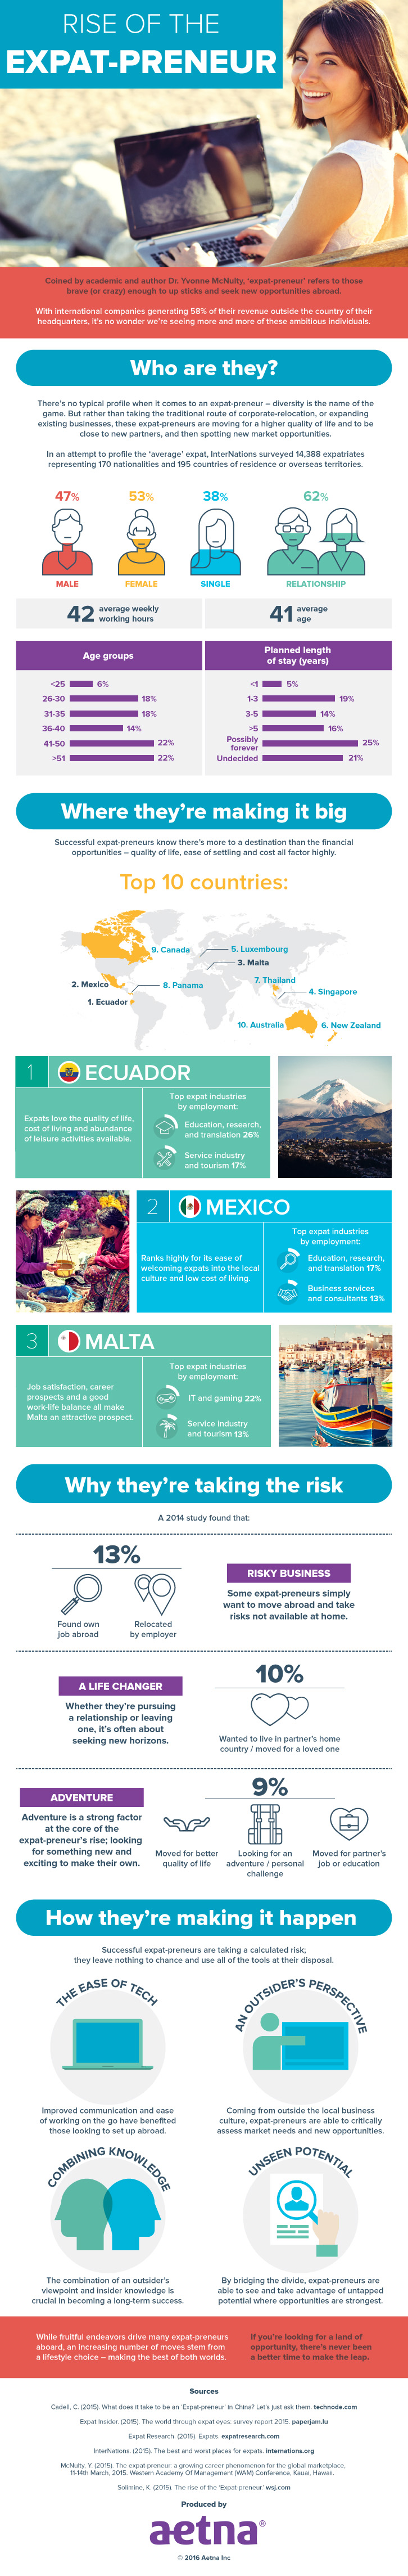 Rise of the Expat-preneur [Infographic]